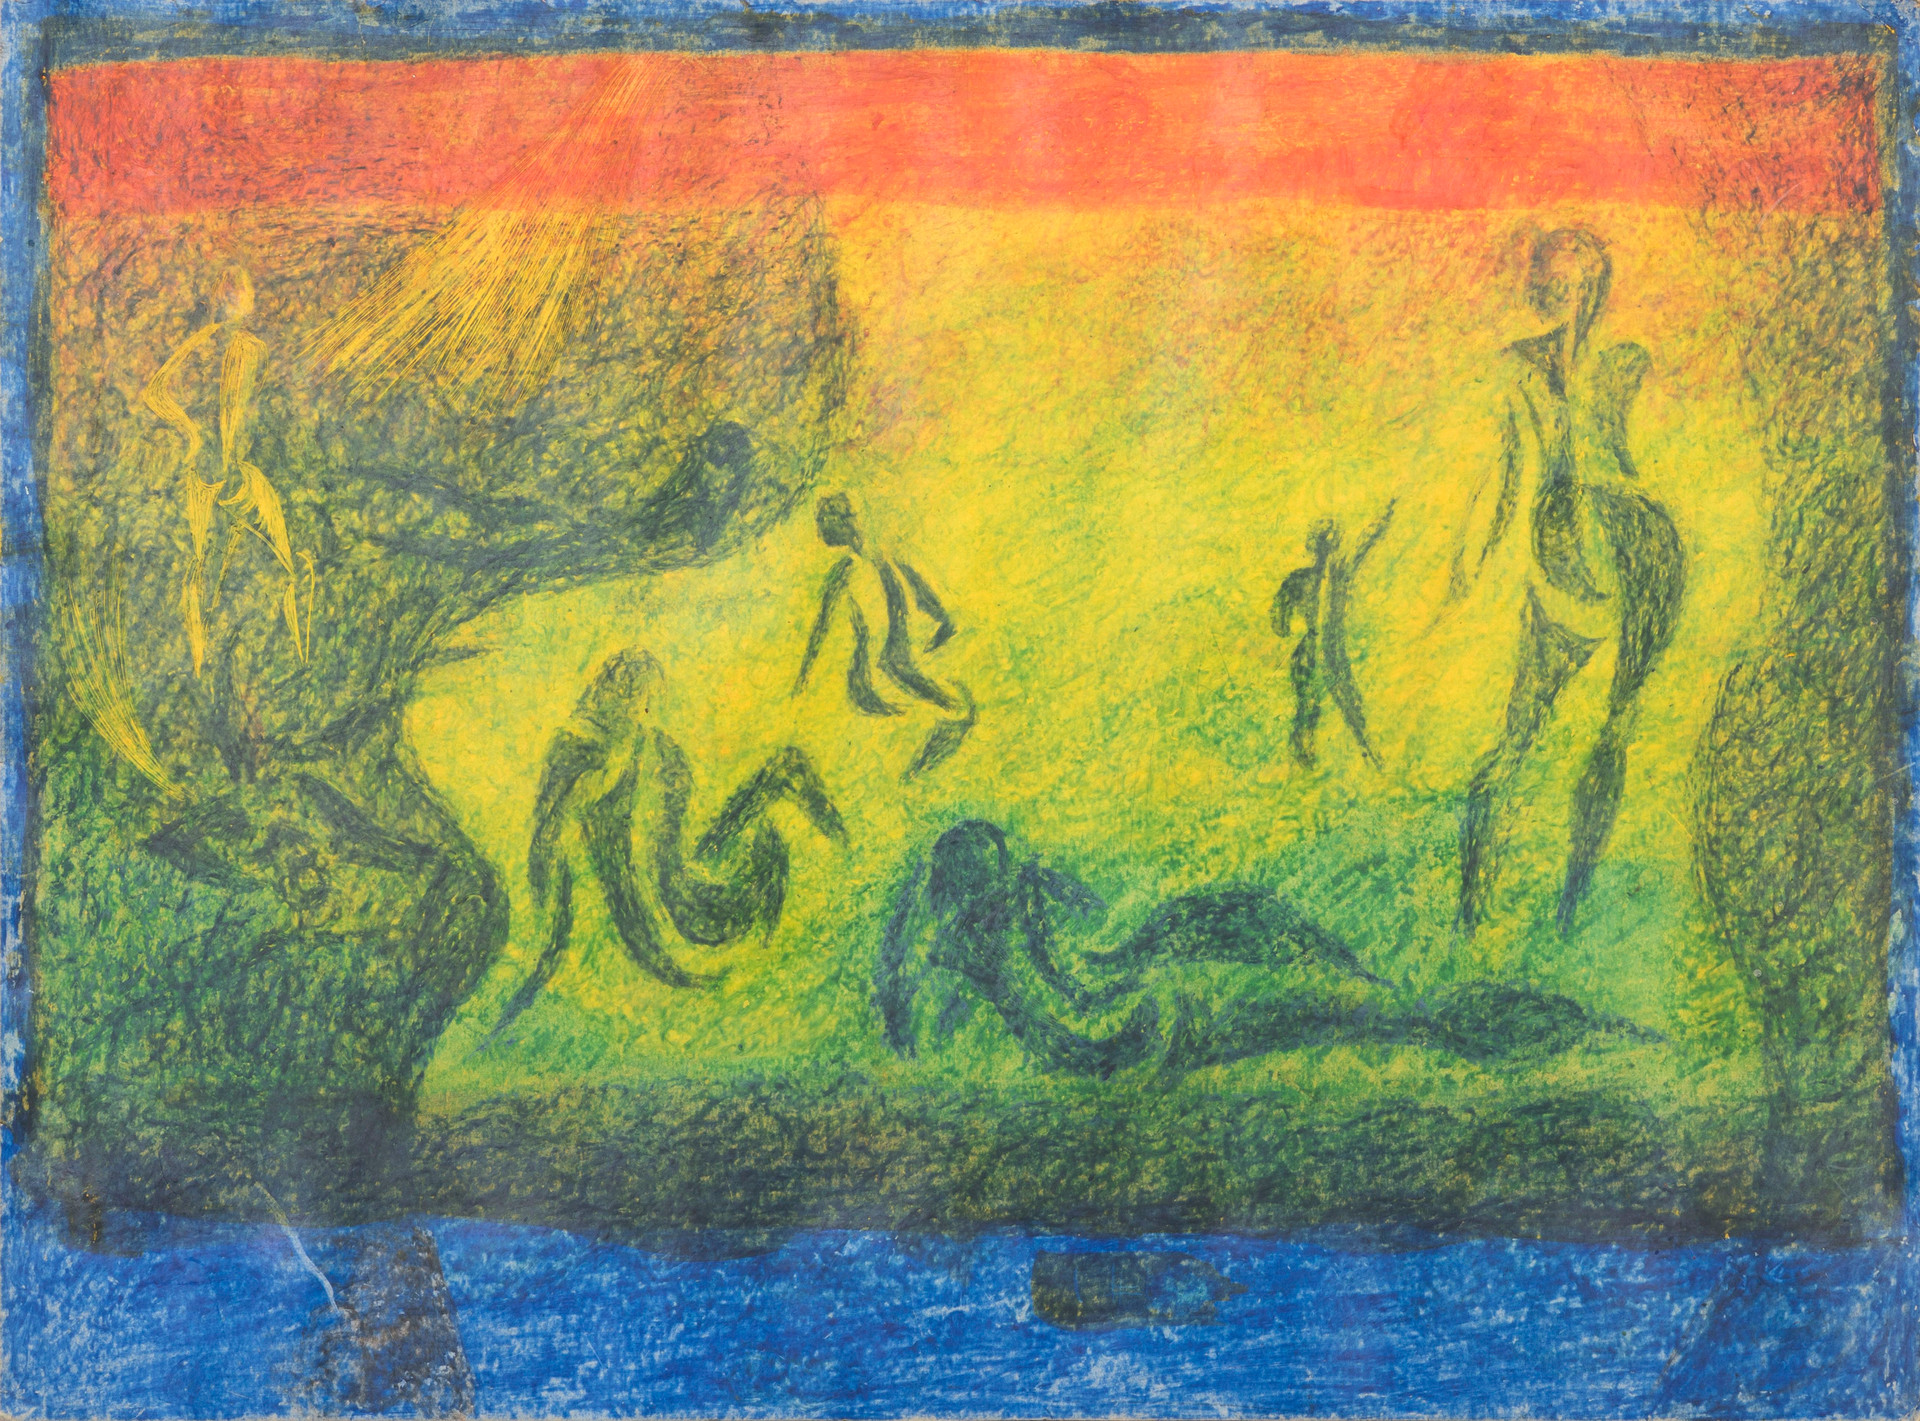 Untitled - abstract blue figures on rainbow color background